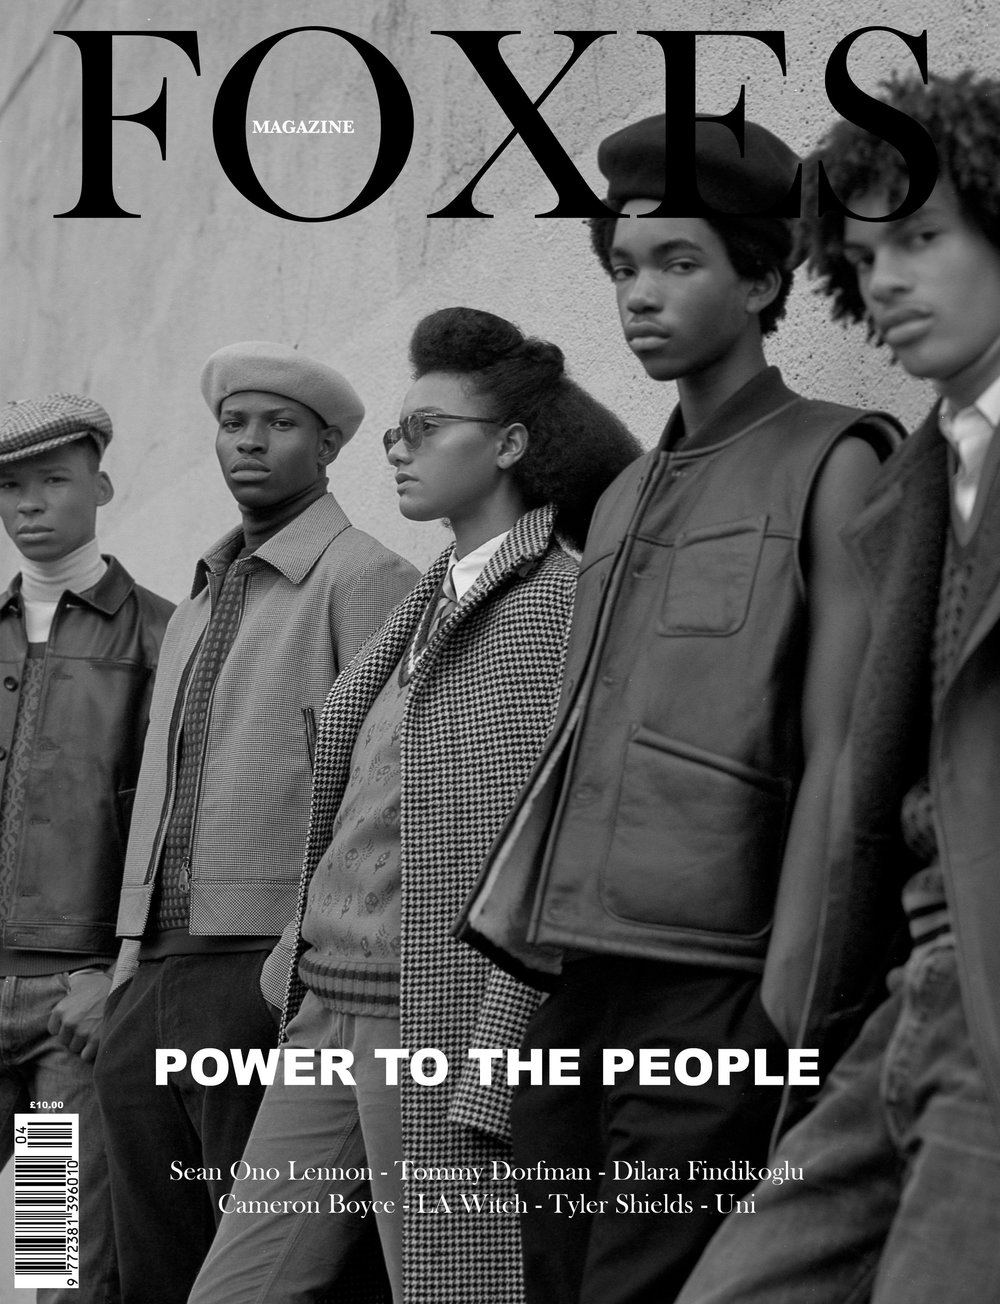 FOXES_MAGAZINE_POWER_TO_THE_PEOPLE_COVER.jpg